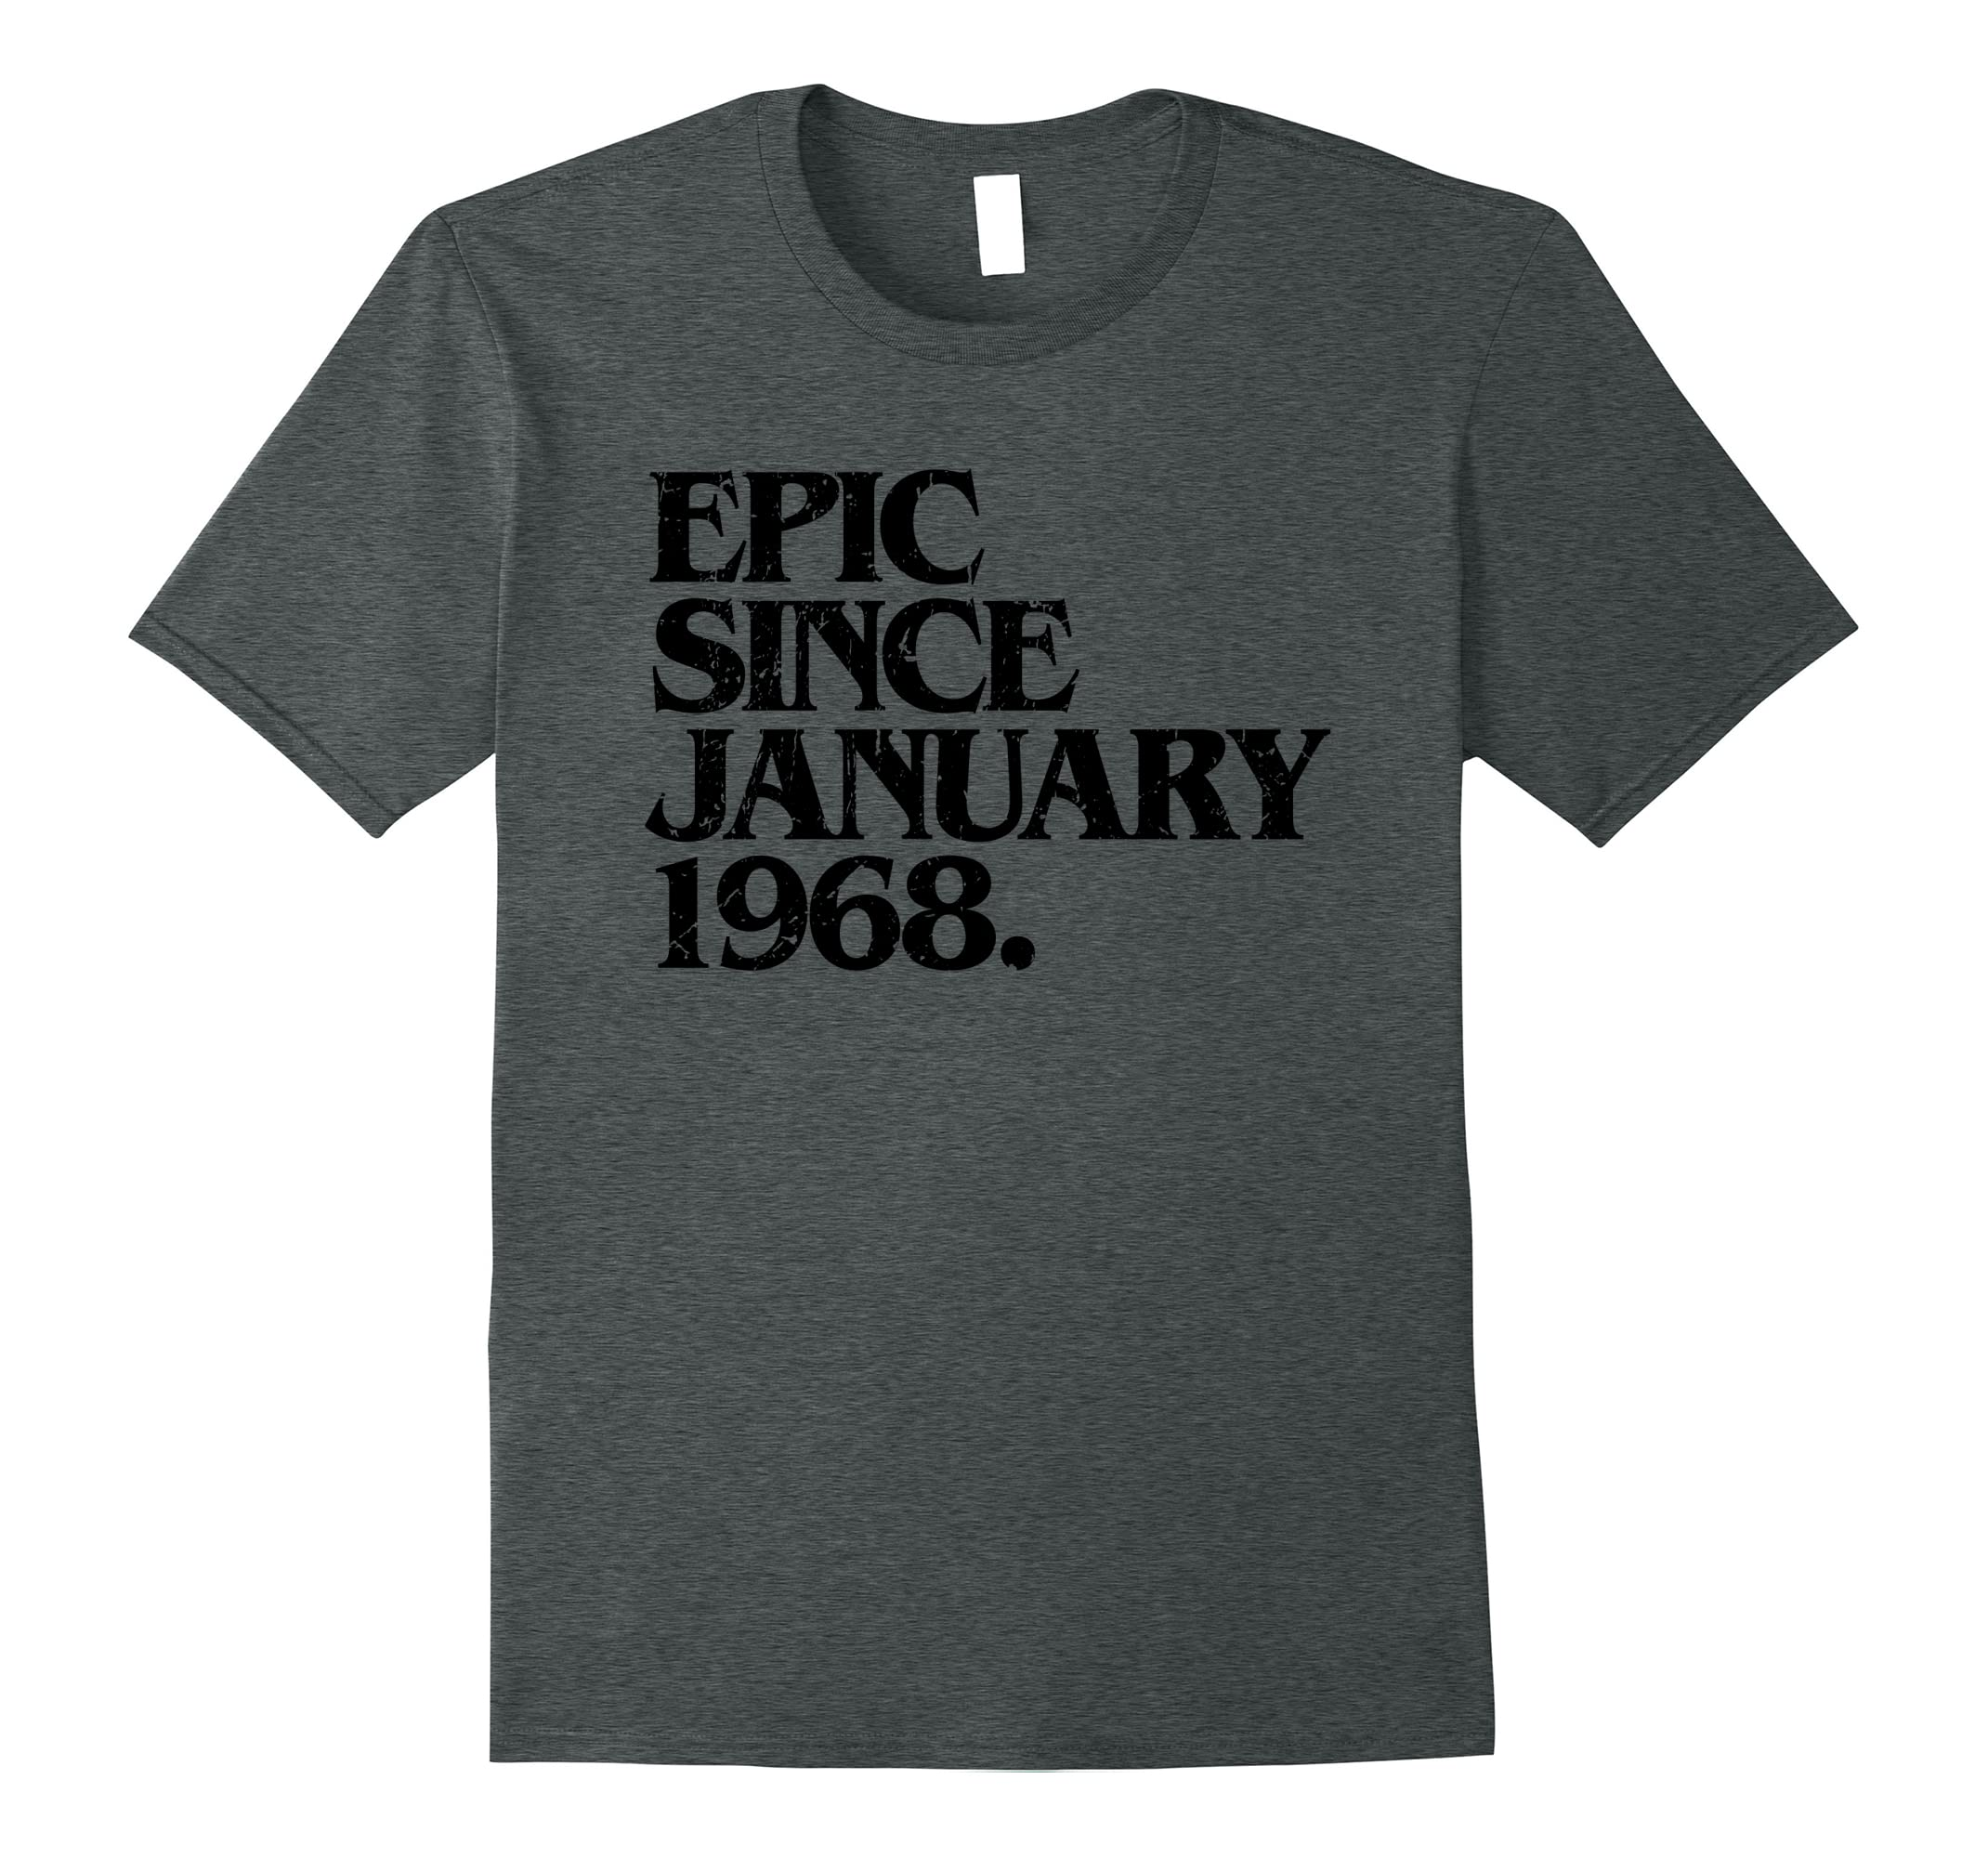 50th Birthday Epic Since January 1968 Funny Gift T-Shirt-ah my shirt one gift